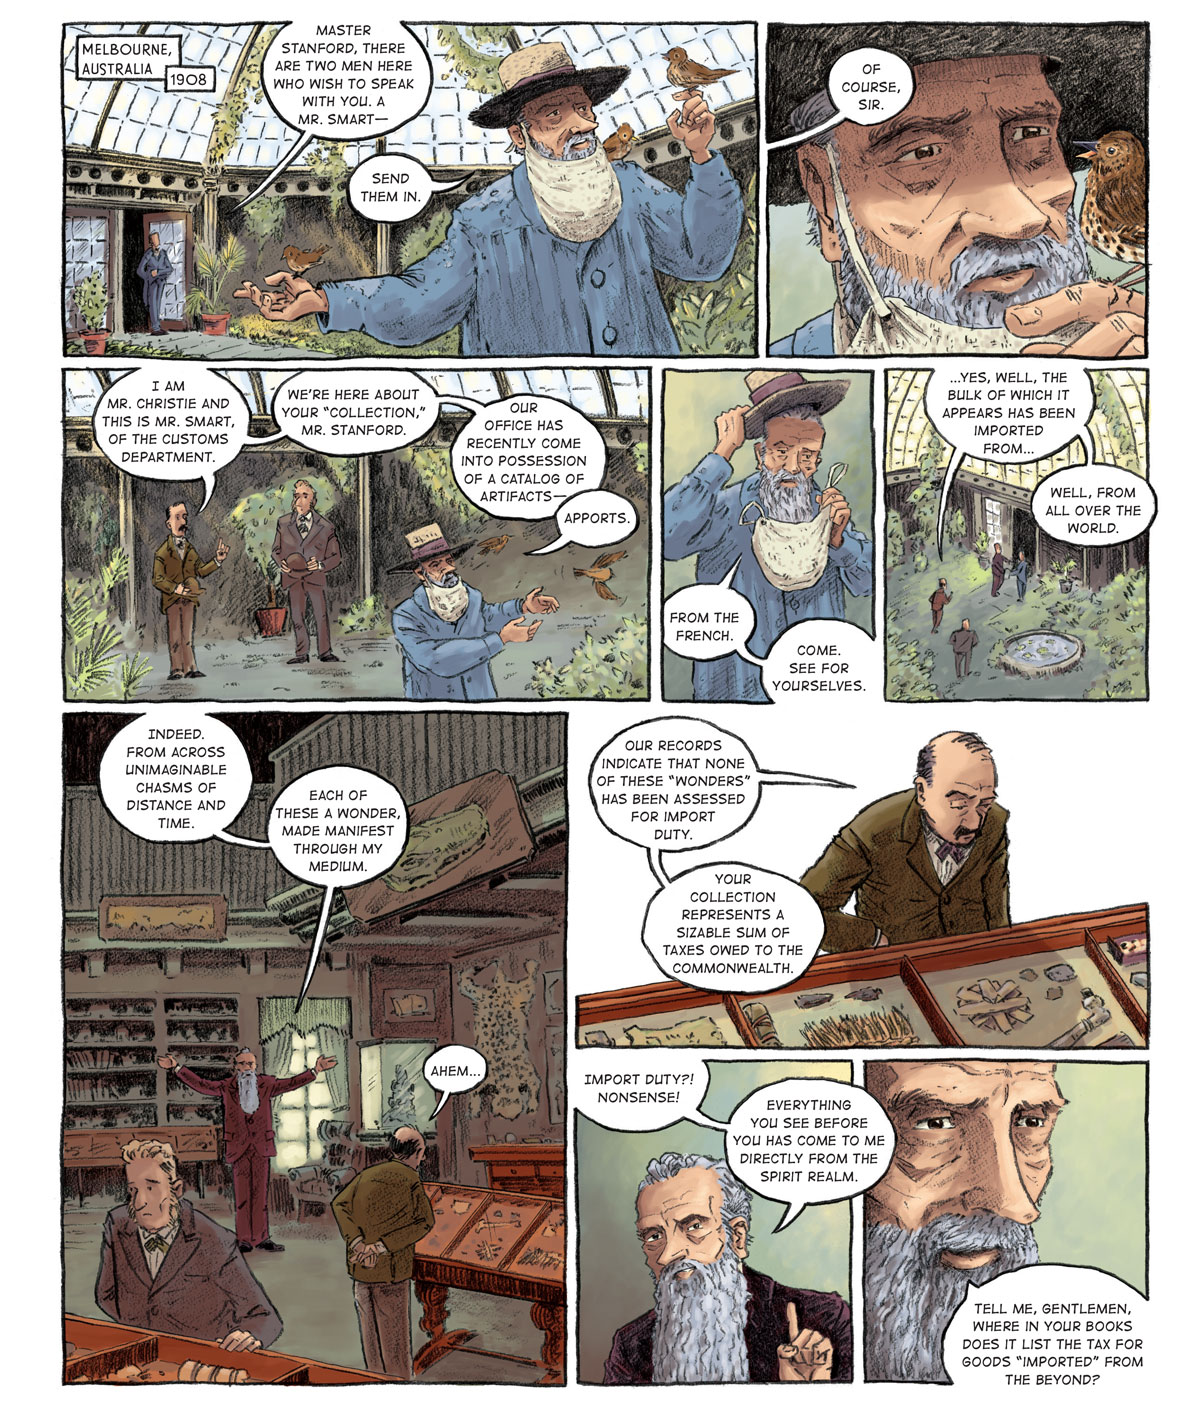 "Panel 1: [Melbourne, Australia 1908] An old man in a blue overcoat, a wide-brimmed straw hat and a beard net stands in the middle of a greenhouse aviary with three brown sparrows resting on his outstretched arms and shoulder. His butler calls from the door: ""Master Stanford, there are two men here who wish to speak with you. A Mr. Smart––"" Stanford interrupts. ""Send them in.""  Panel 2: Stanford is now intently focused on the bird on his left hand, which he has brought closer to his face at eye-level. The butler responds (off-panel), ""Of course, sir.""   Panel 3: Two men stand on the perimeter of the greenhouse, hats in hand. Stanford does not face them, instead watching the birds fly away. On the right stands the taller of the two men, clasping his hat with both hands. He has pronounced sideburns and wears a grey suit with a green bowtie. On the left is a skinnier man, slightly balding but sporting a thick mustache. He wears a mustard brown jacket and khaki pants and lifts his hand to speak. ""I am Mr. Christie and this is Mr. Smart, of the Customs Department. We're here about your 'collection,' Mr. Stanford. Our office has recently come into possession of a catalog of artifacts––"" ""Apports."" Mr. Stanford corrects him.   Panel 4: As he takes off his hat and beard net, Stanford clarifies. ""From the French. Come see for yourselves.""  Panel 5: Stanford leads his visitors out of the greenhouse. Mr. Christie responds as he follows. ""Yes, well, the bulk of which it appears has been imported from… well, from all over the world.""  Panel 6: [in the collection room] Mr. Christie and Mr. Smart peruse the artifacts. Stanford, now bespectacled and clad in a mahogany suit, affirms Mr. Christie's statement with his arms spread wide. ""Indeed. From across unimaginable chasms of distance and time. Each of these a wonder, made manifest through my medium.""  Panel 7: Mr. Christie continues to inspect the items. Calmly, he reveals the reason he and Mr. Smart have come to the Stanford residence. ""Our records indicate that none of these ""wonders"" has been assessed for import duty. Your collection represents a sizable sum of taxes owed to the commonwealth.""  Panel 8: Stanford is incredulous. He takes of his glasses. ""Import duty?! Nonsense! Everything you see before you has come to me directly from the spirit realm.""  Panel 9: He continues: ""Tell me, gentlemen, where in your books does it list the tax for goods 'imported' from the beyond?"""